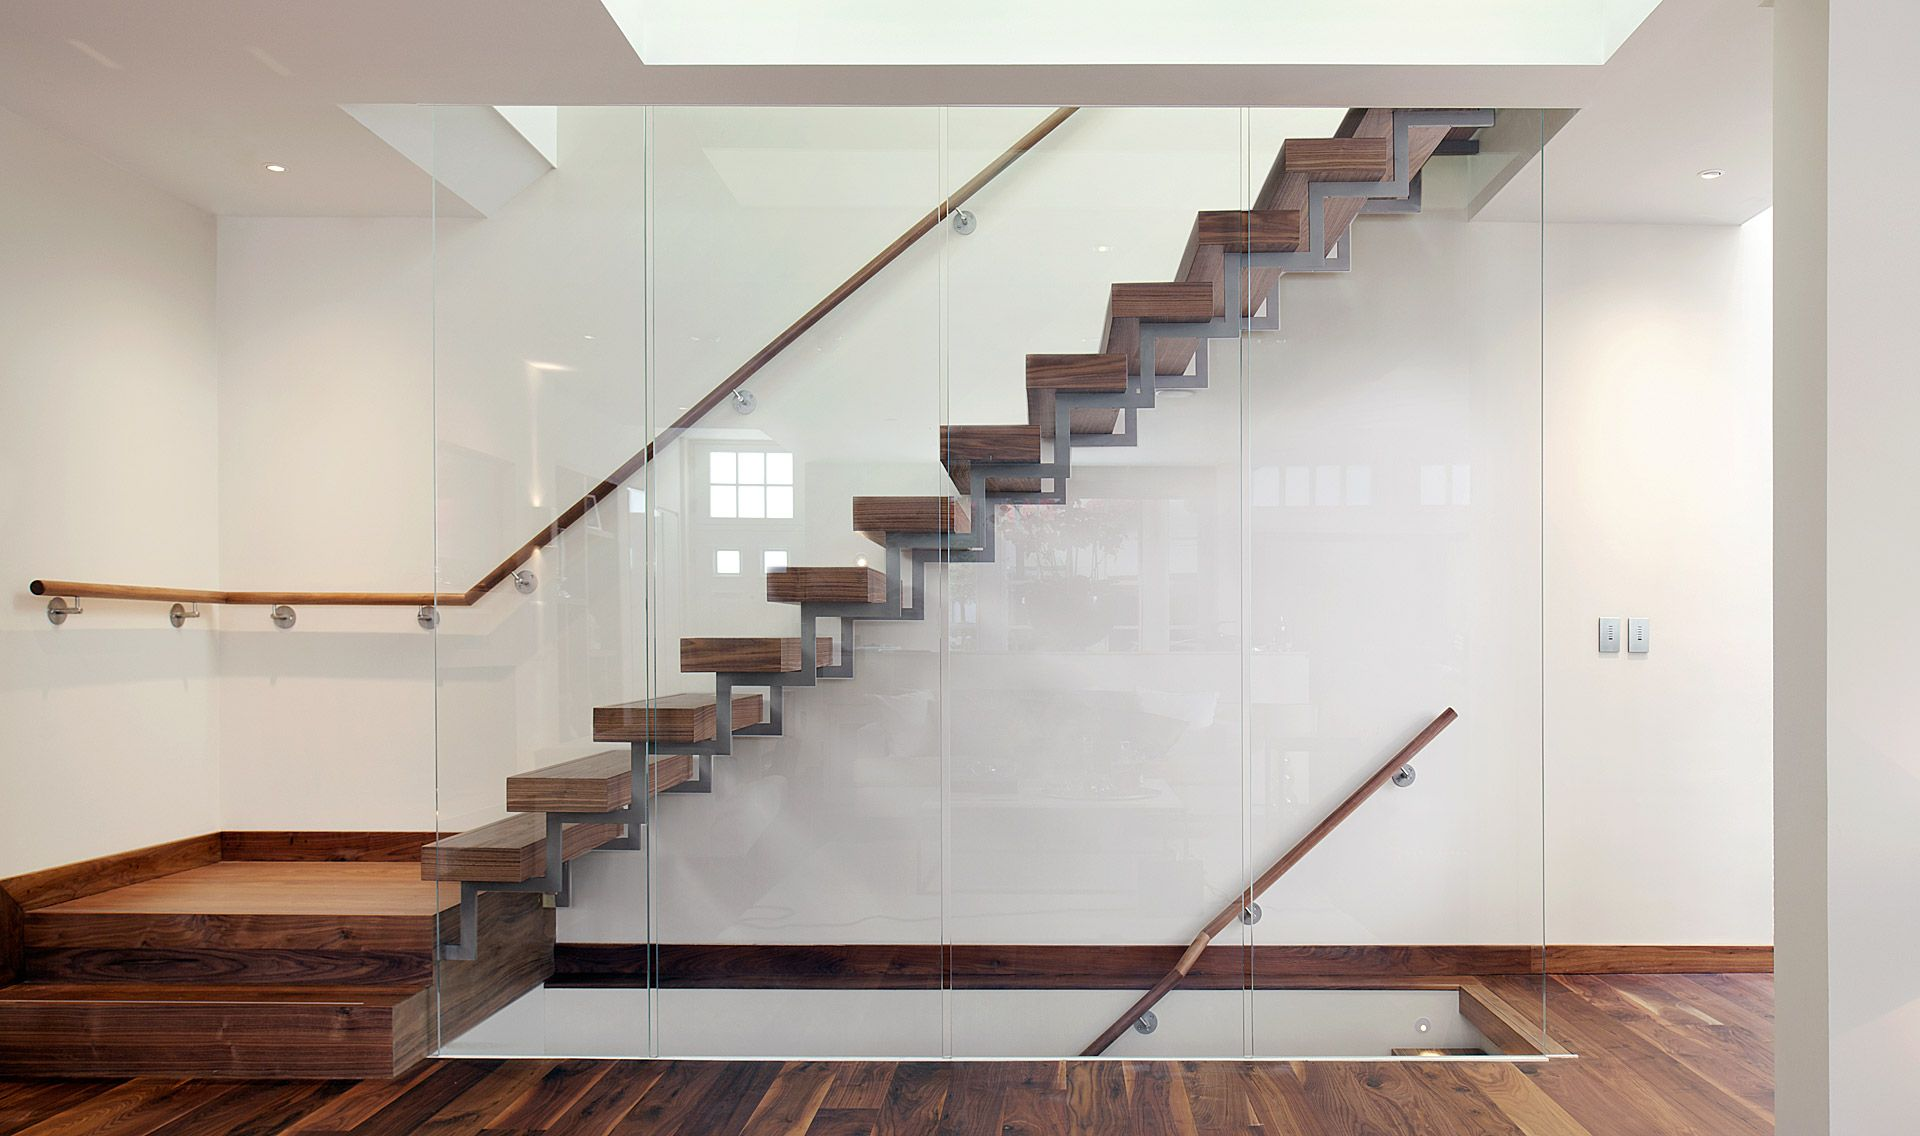 Design Floating Steps magnificent floating stairs for your interior design and decor ideas lovely wooden step with